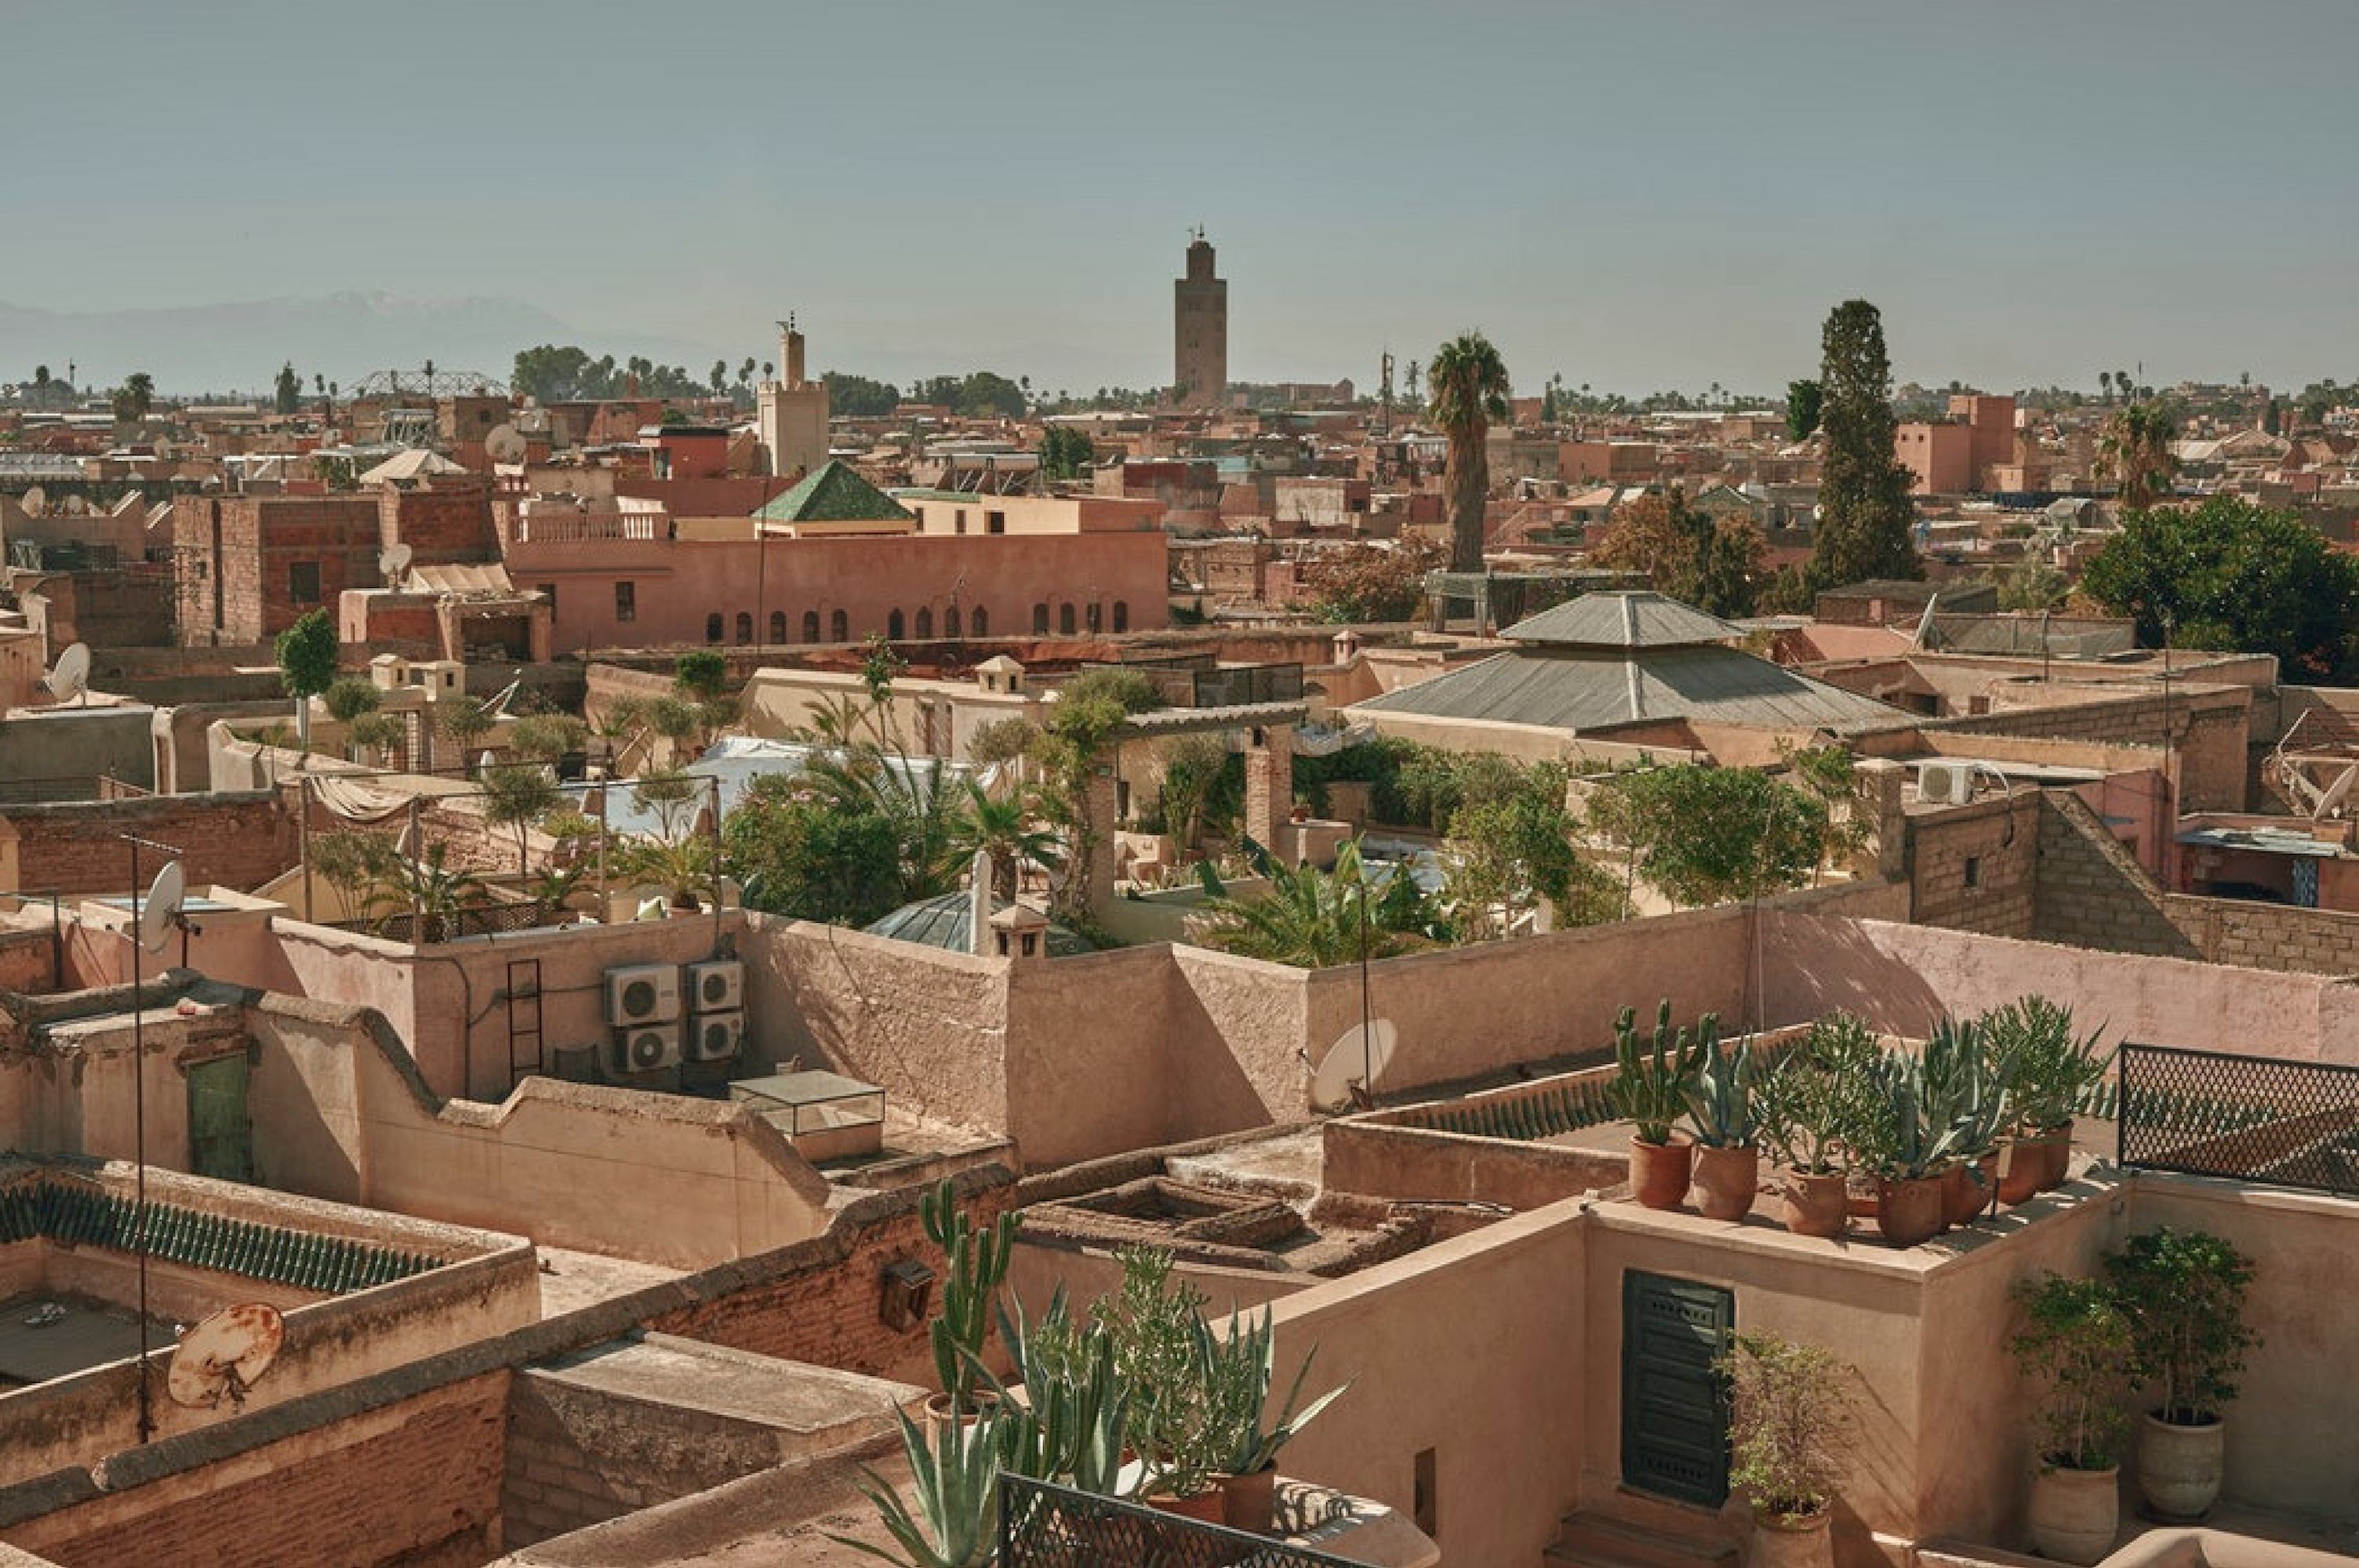 Take a tour through the Medina and visit historical sites of Marrakech